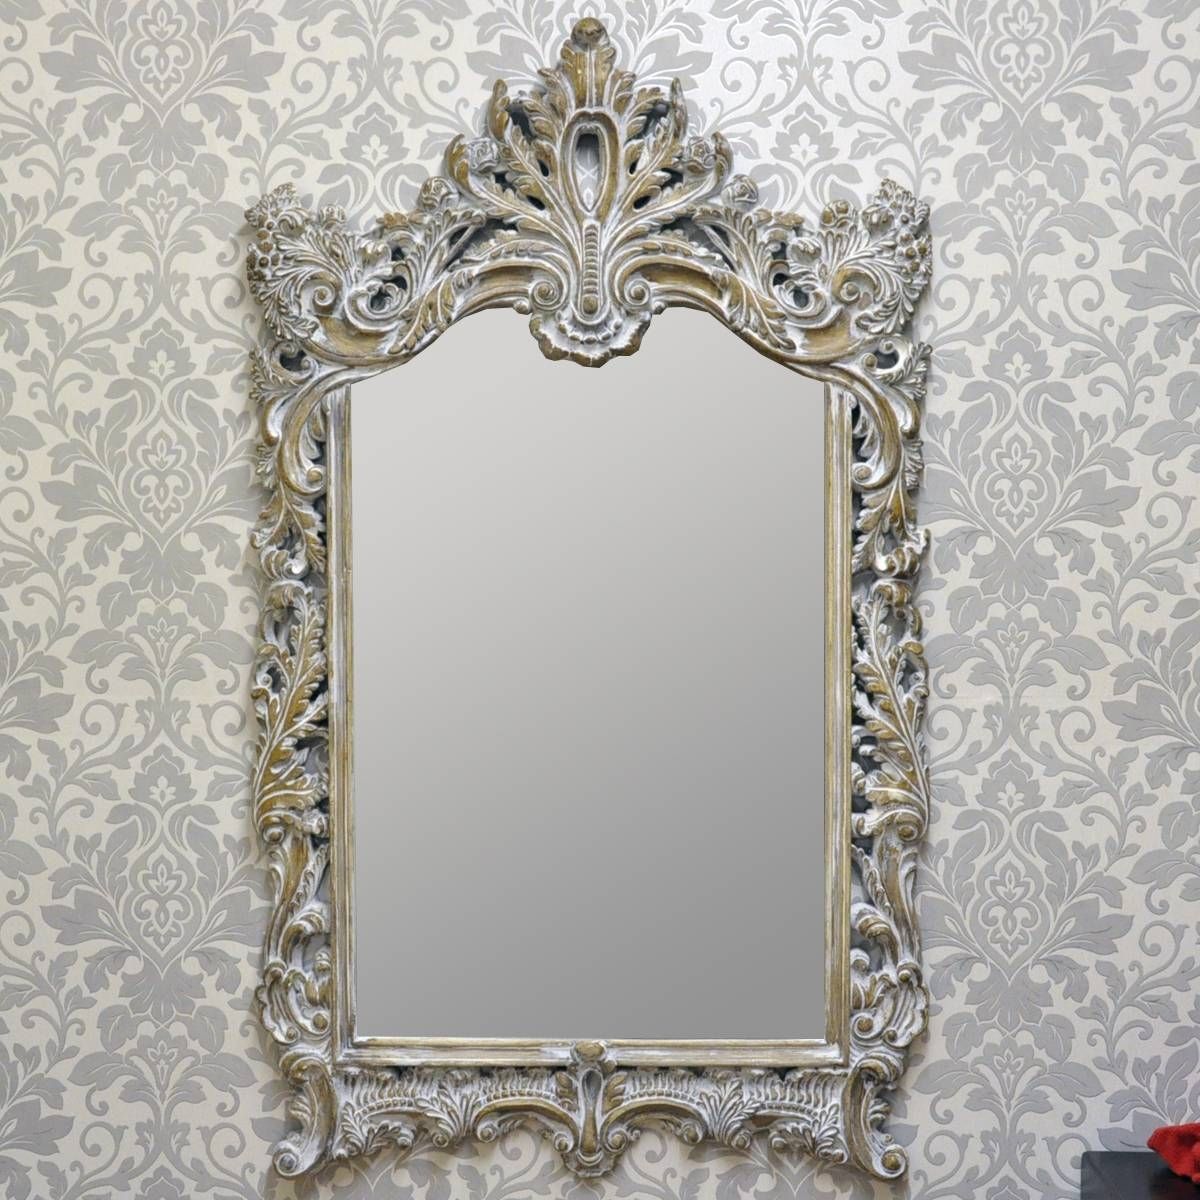 French Style Wall Mirror 47 Stunning Decor With French Style Long inside Antique Looking Mirrors (Image 17 of 25)